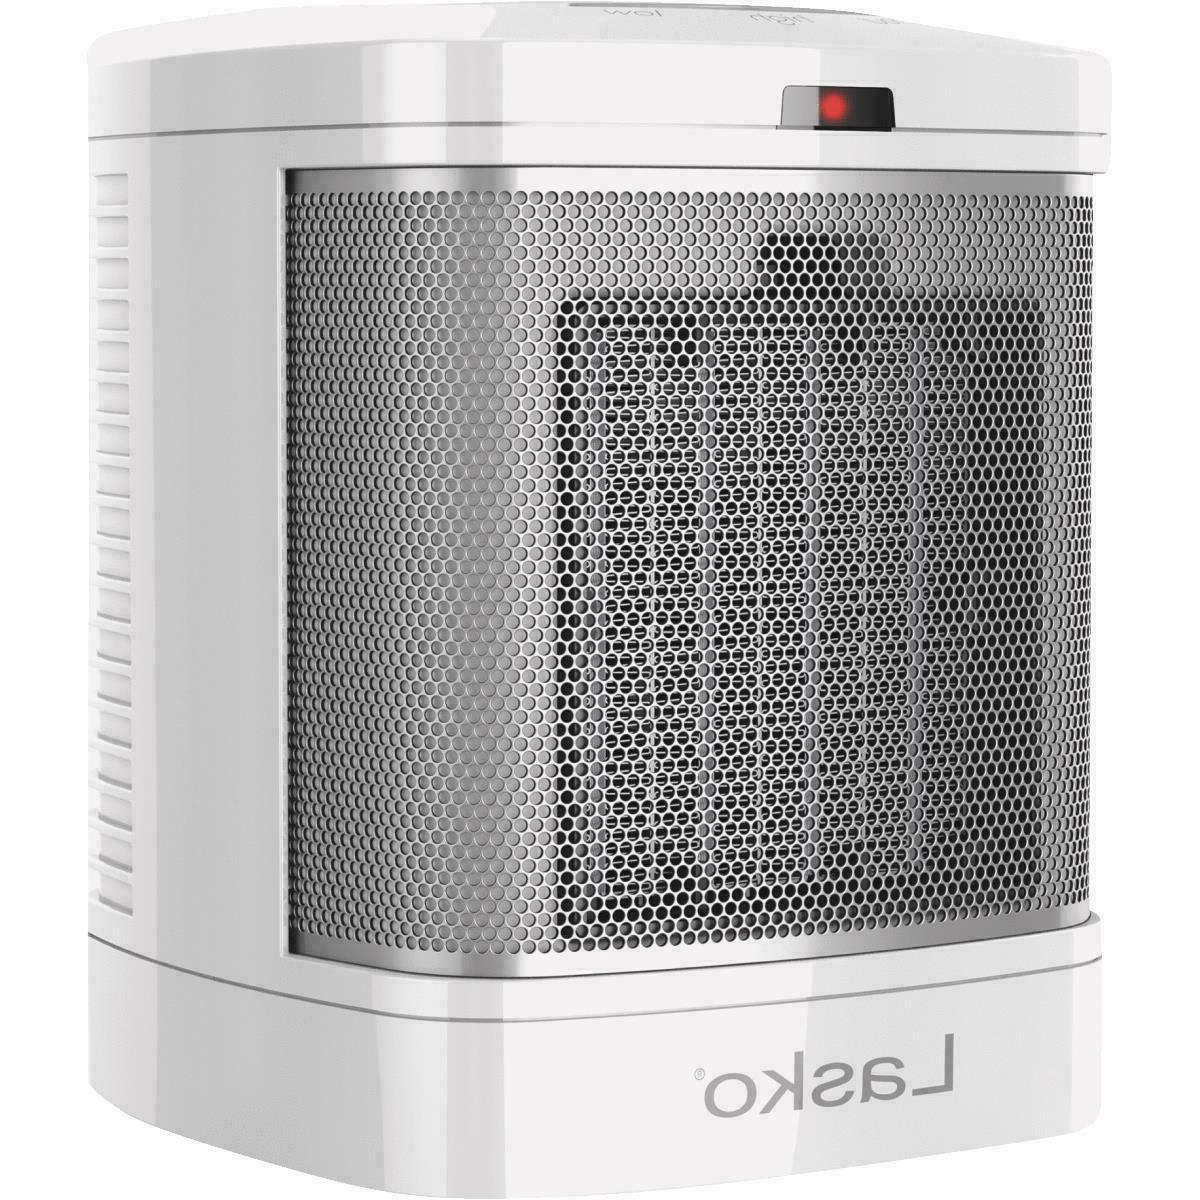 1500w bathroom space heater with alci safety